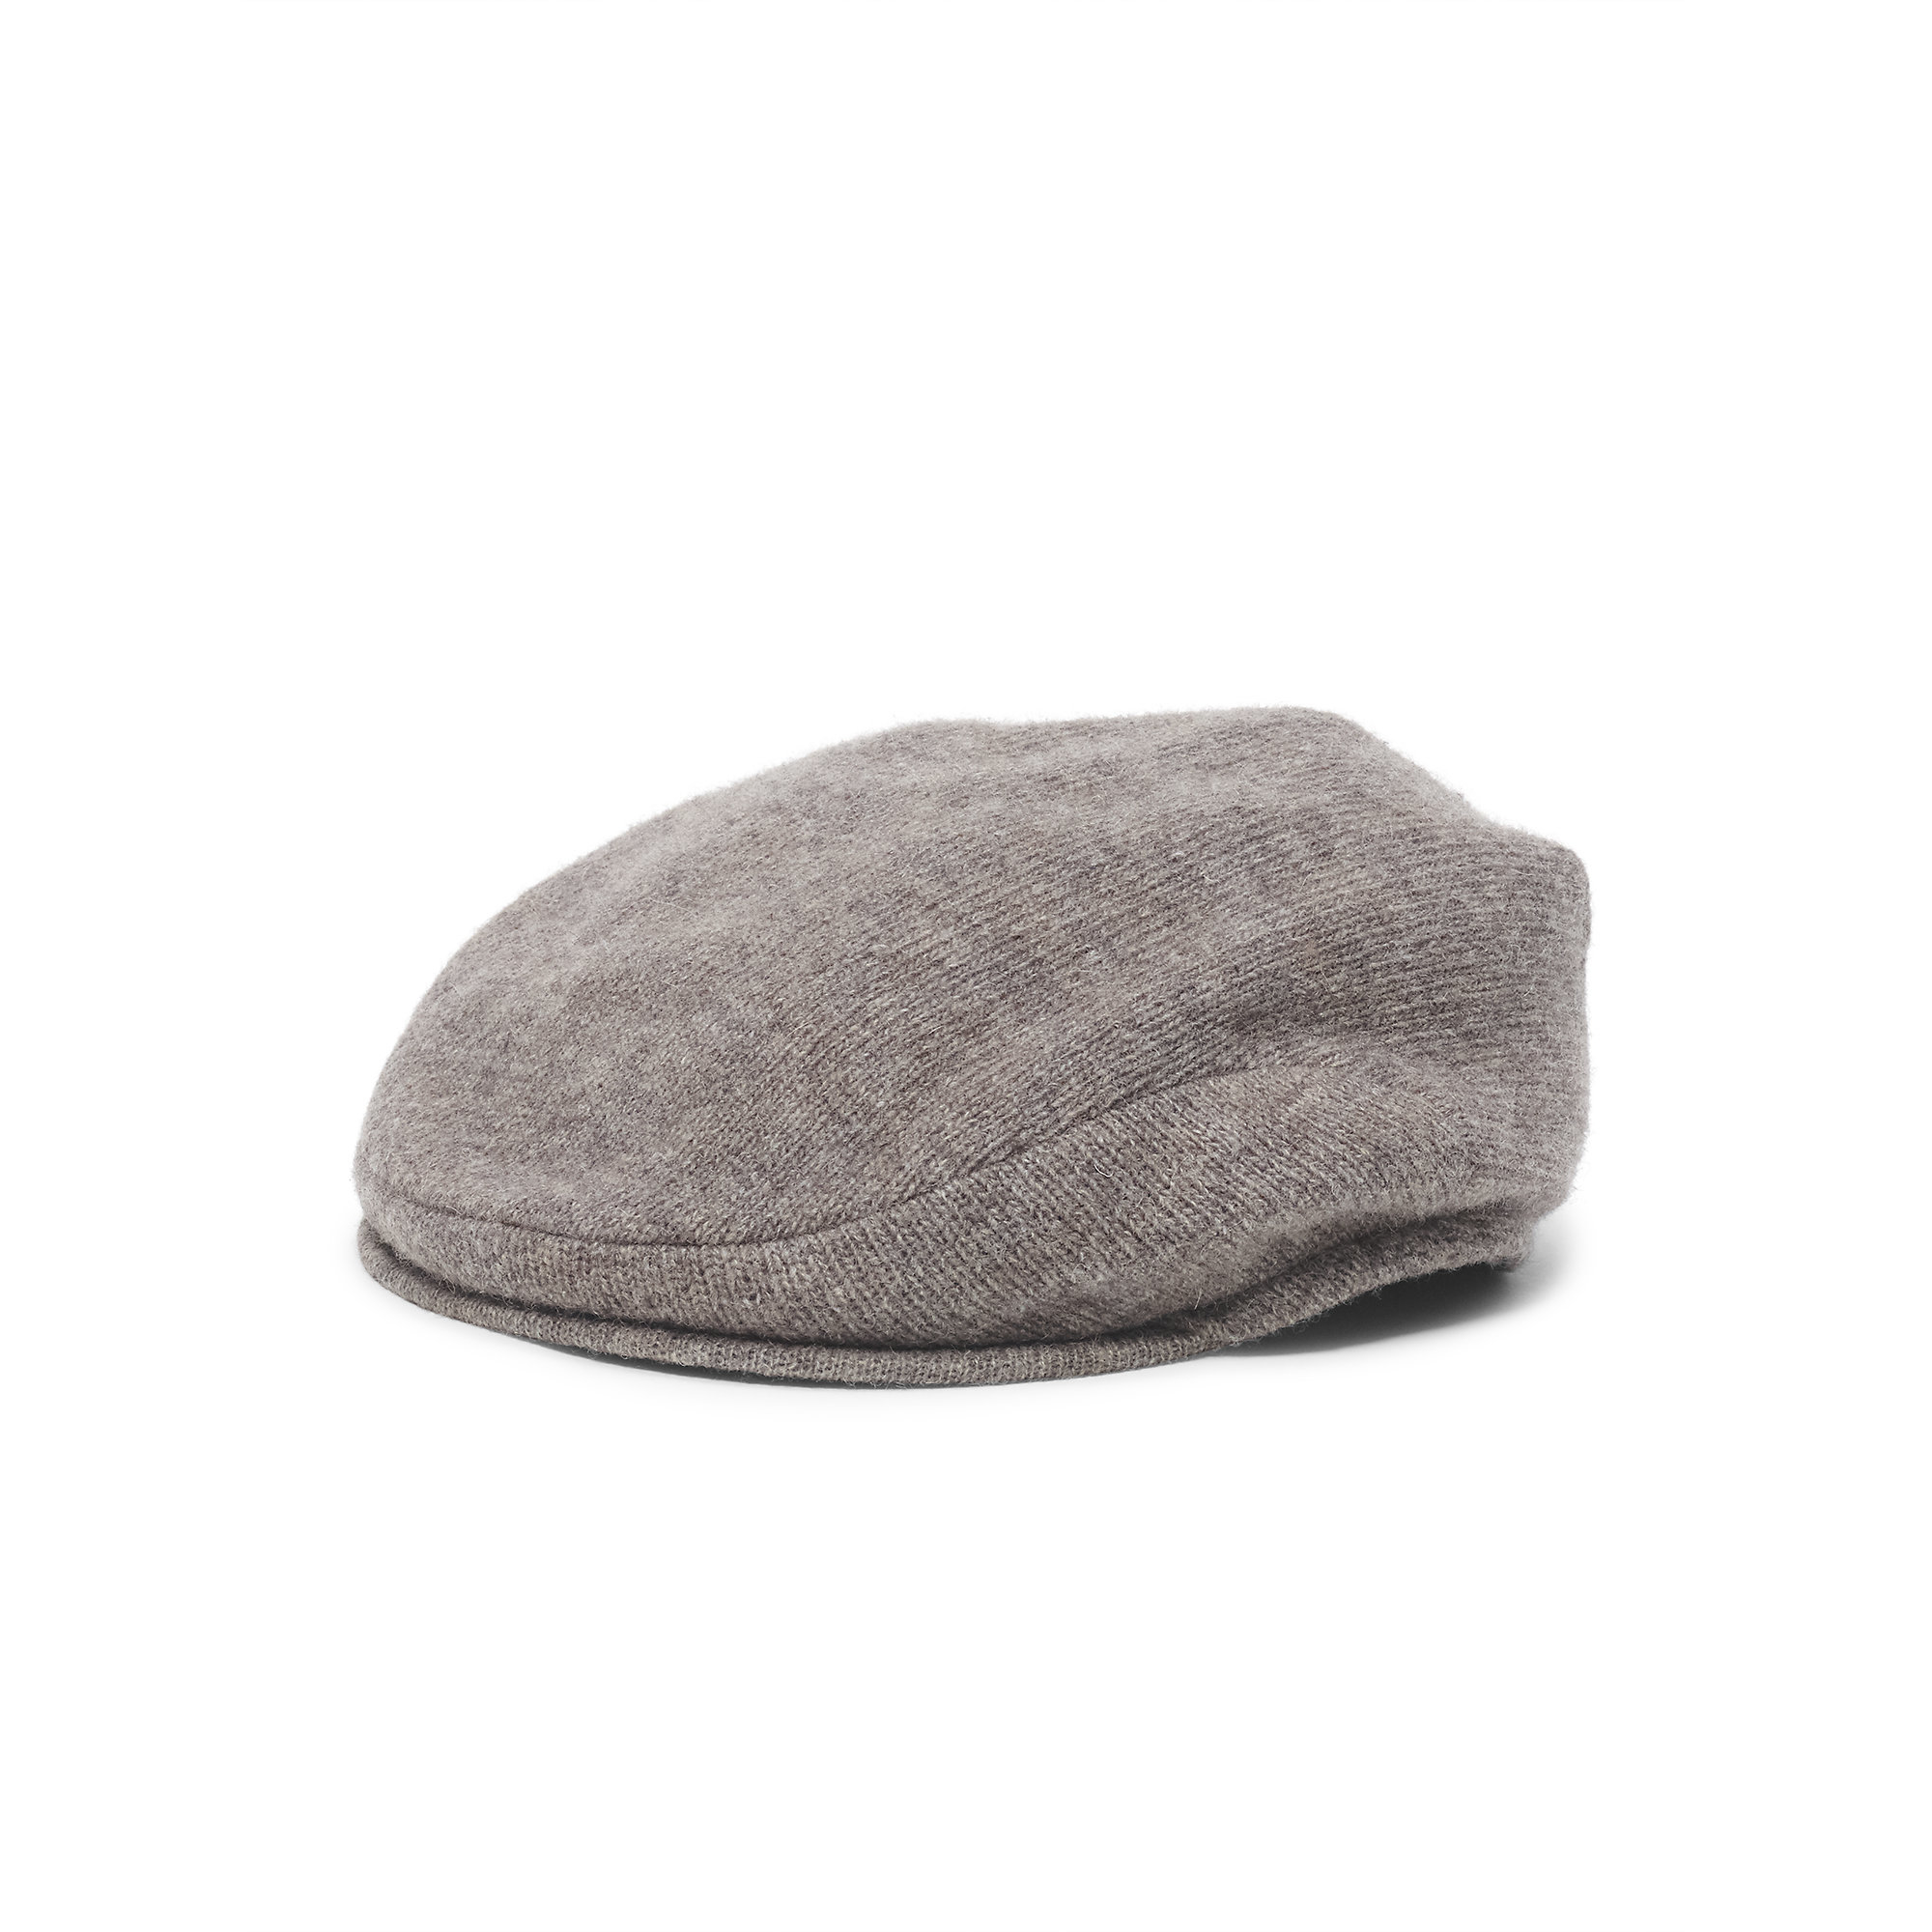 polo ralph lauren wool blend driving cap in brown for men. Black Bedroom Furniture Sets. Home Design Ideas